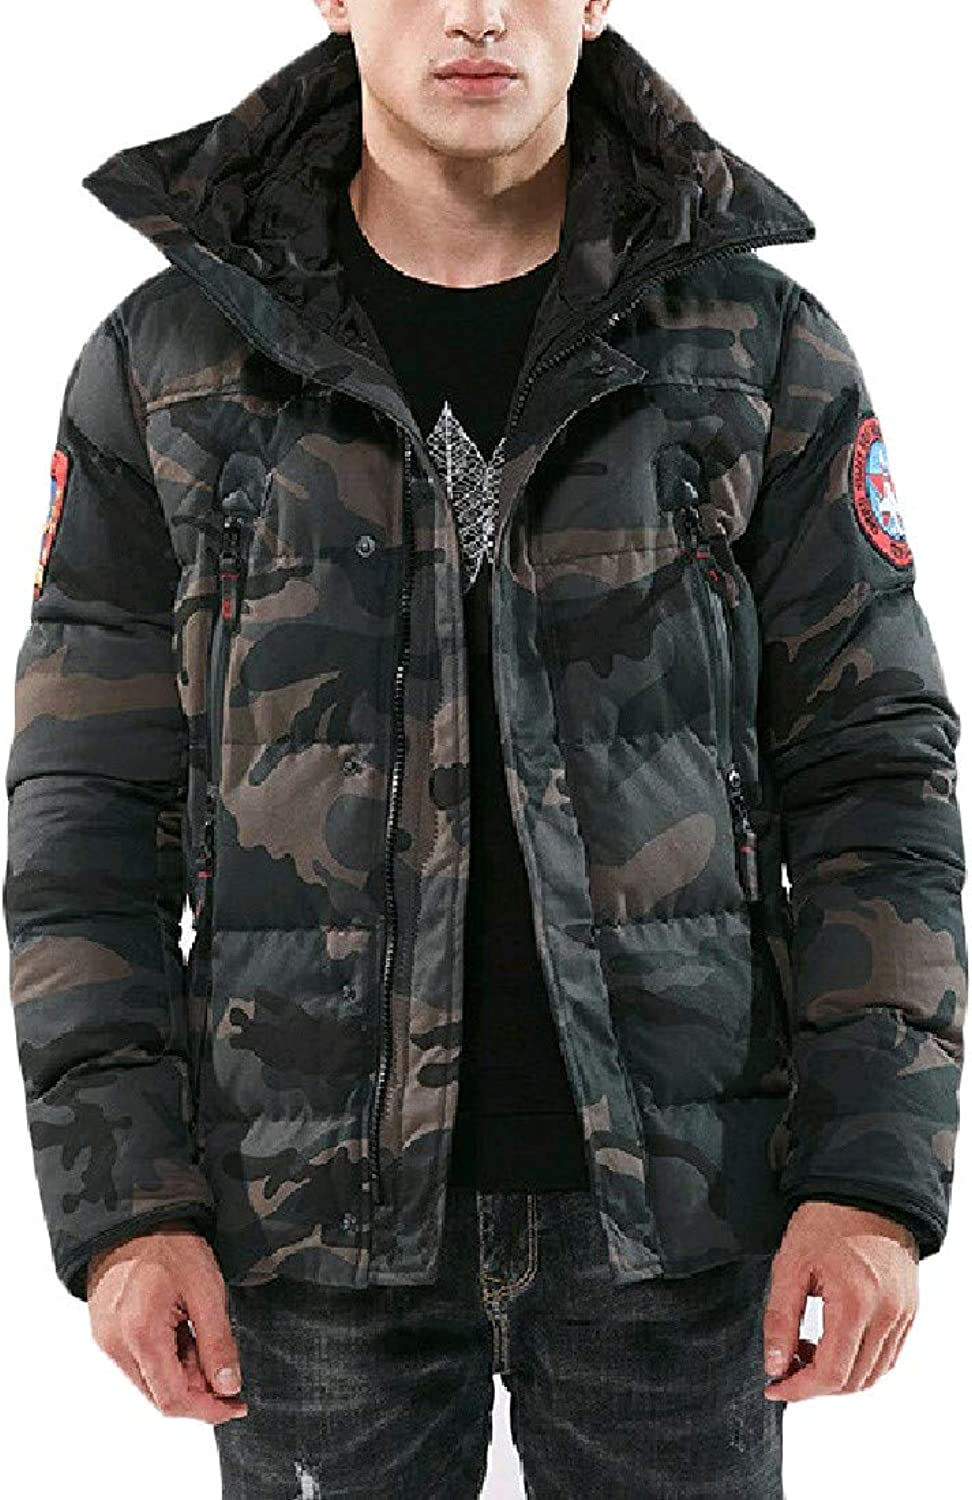 4c2fa3331d Doanpa Men Camouflage Camouflage Camouflage Army Outdoor Sports Plus Size  Outdoor Coat 1b9bc9